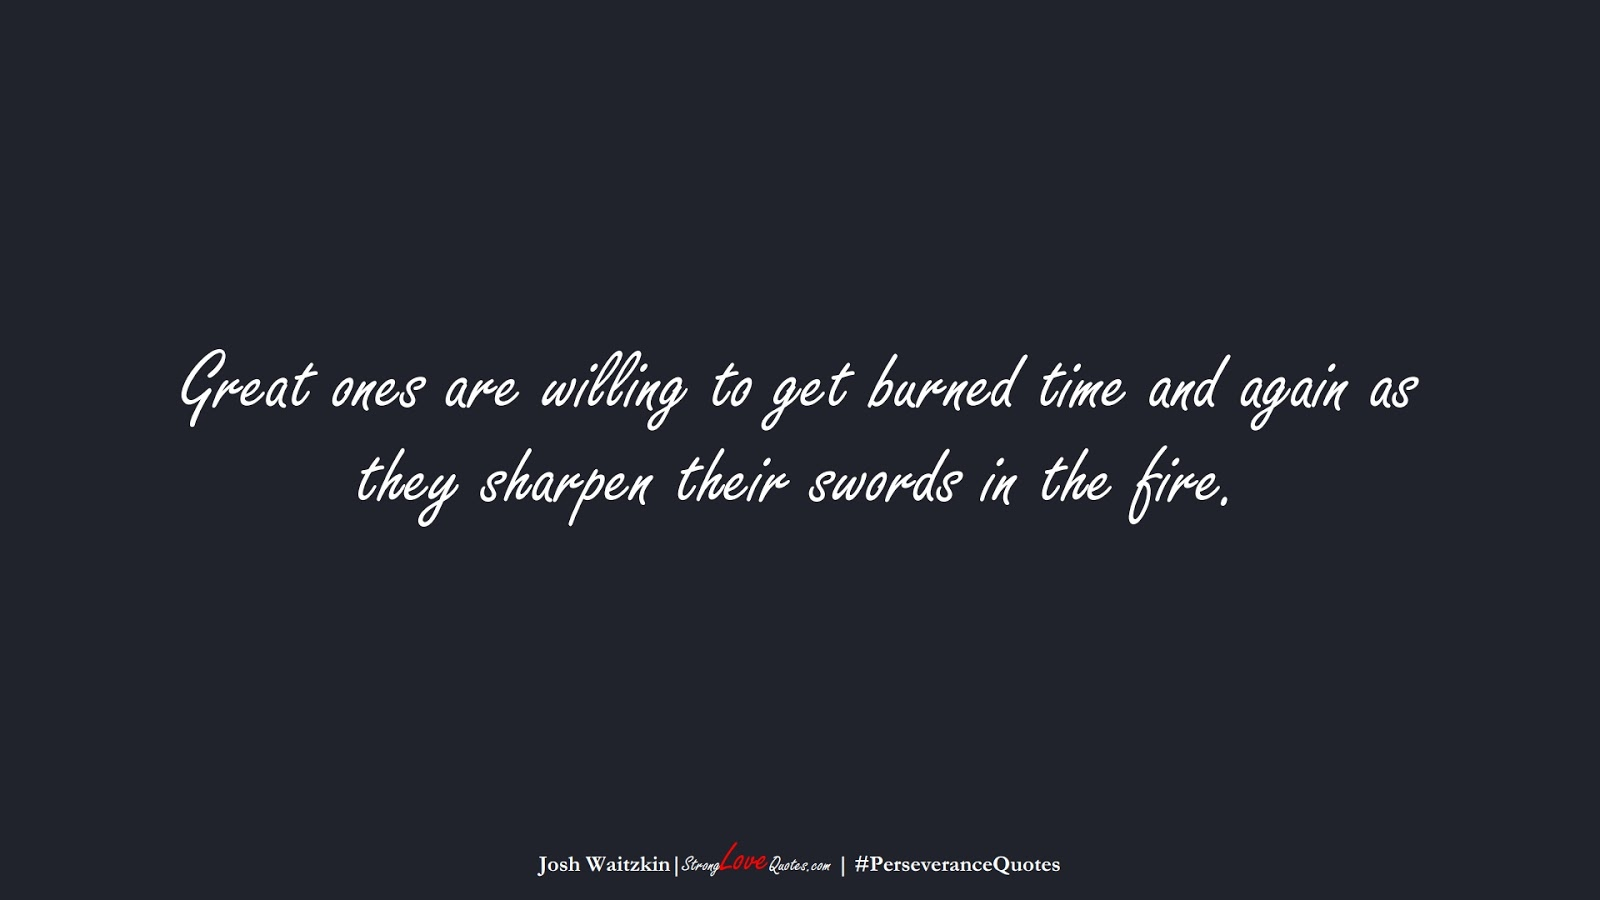 Great ones are willing to get burned time and again as they sharpen their swords in the fire. (Josh Waitzkin);  #PerseveranceQuotes